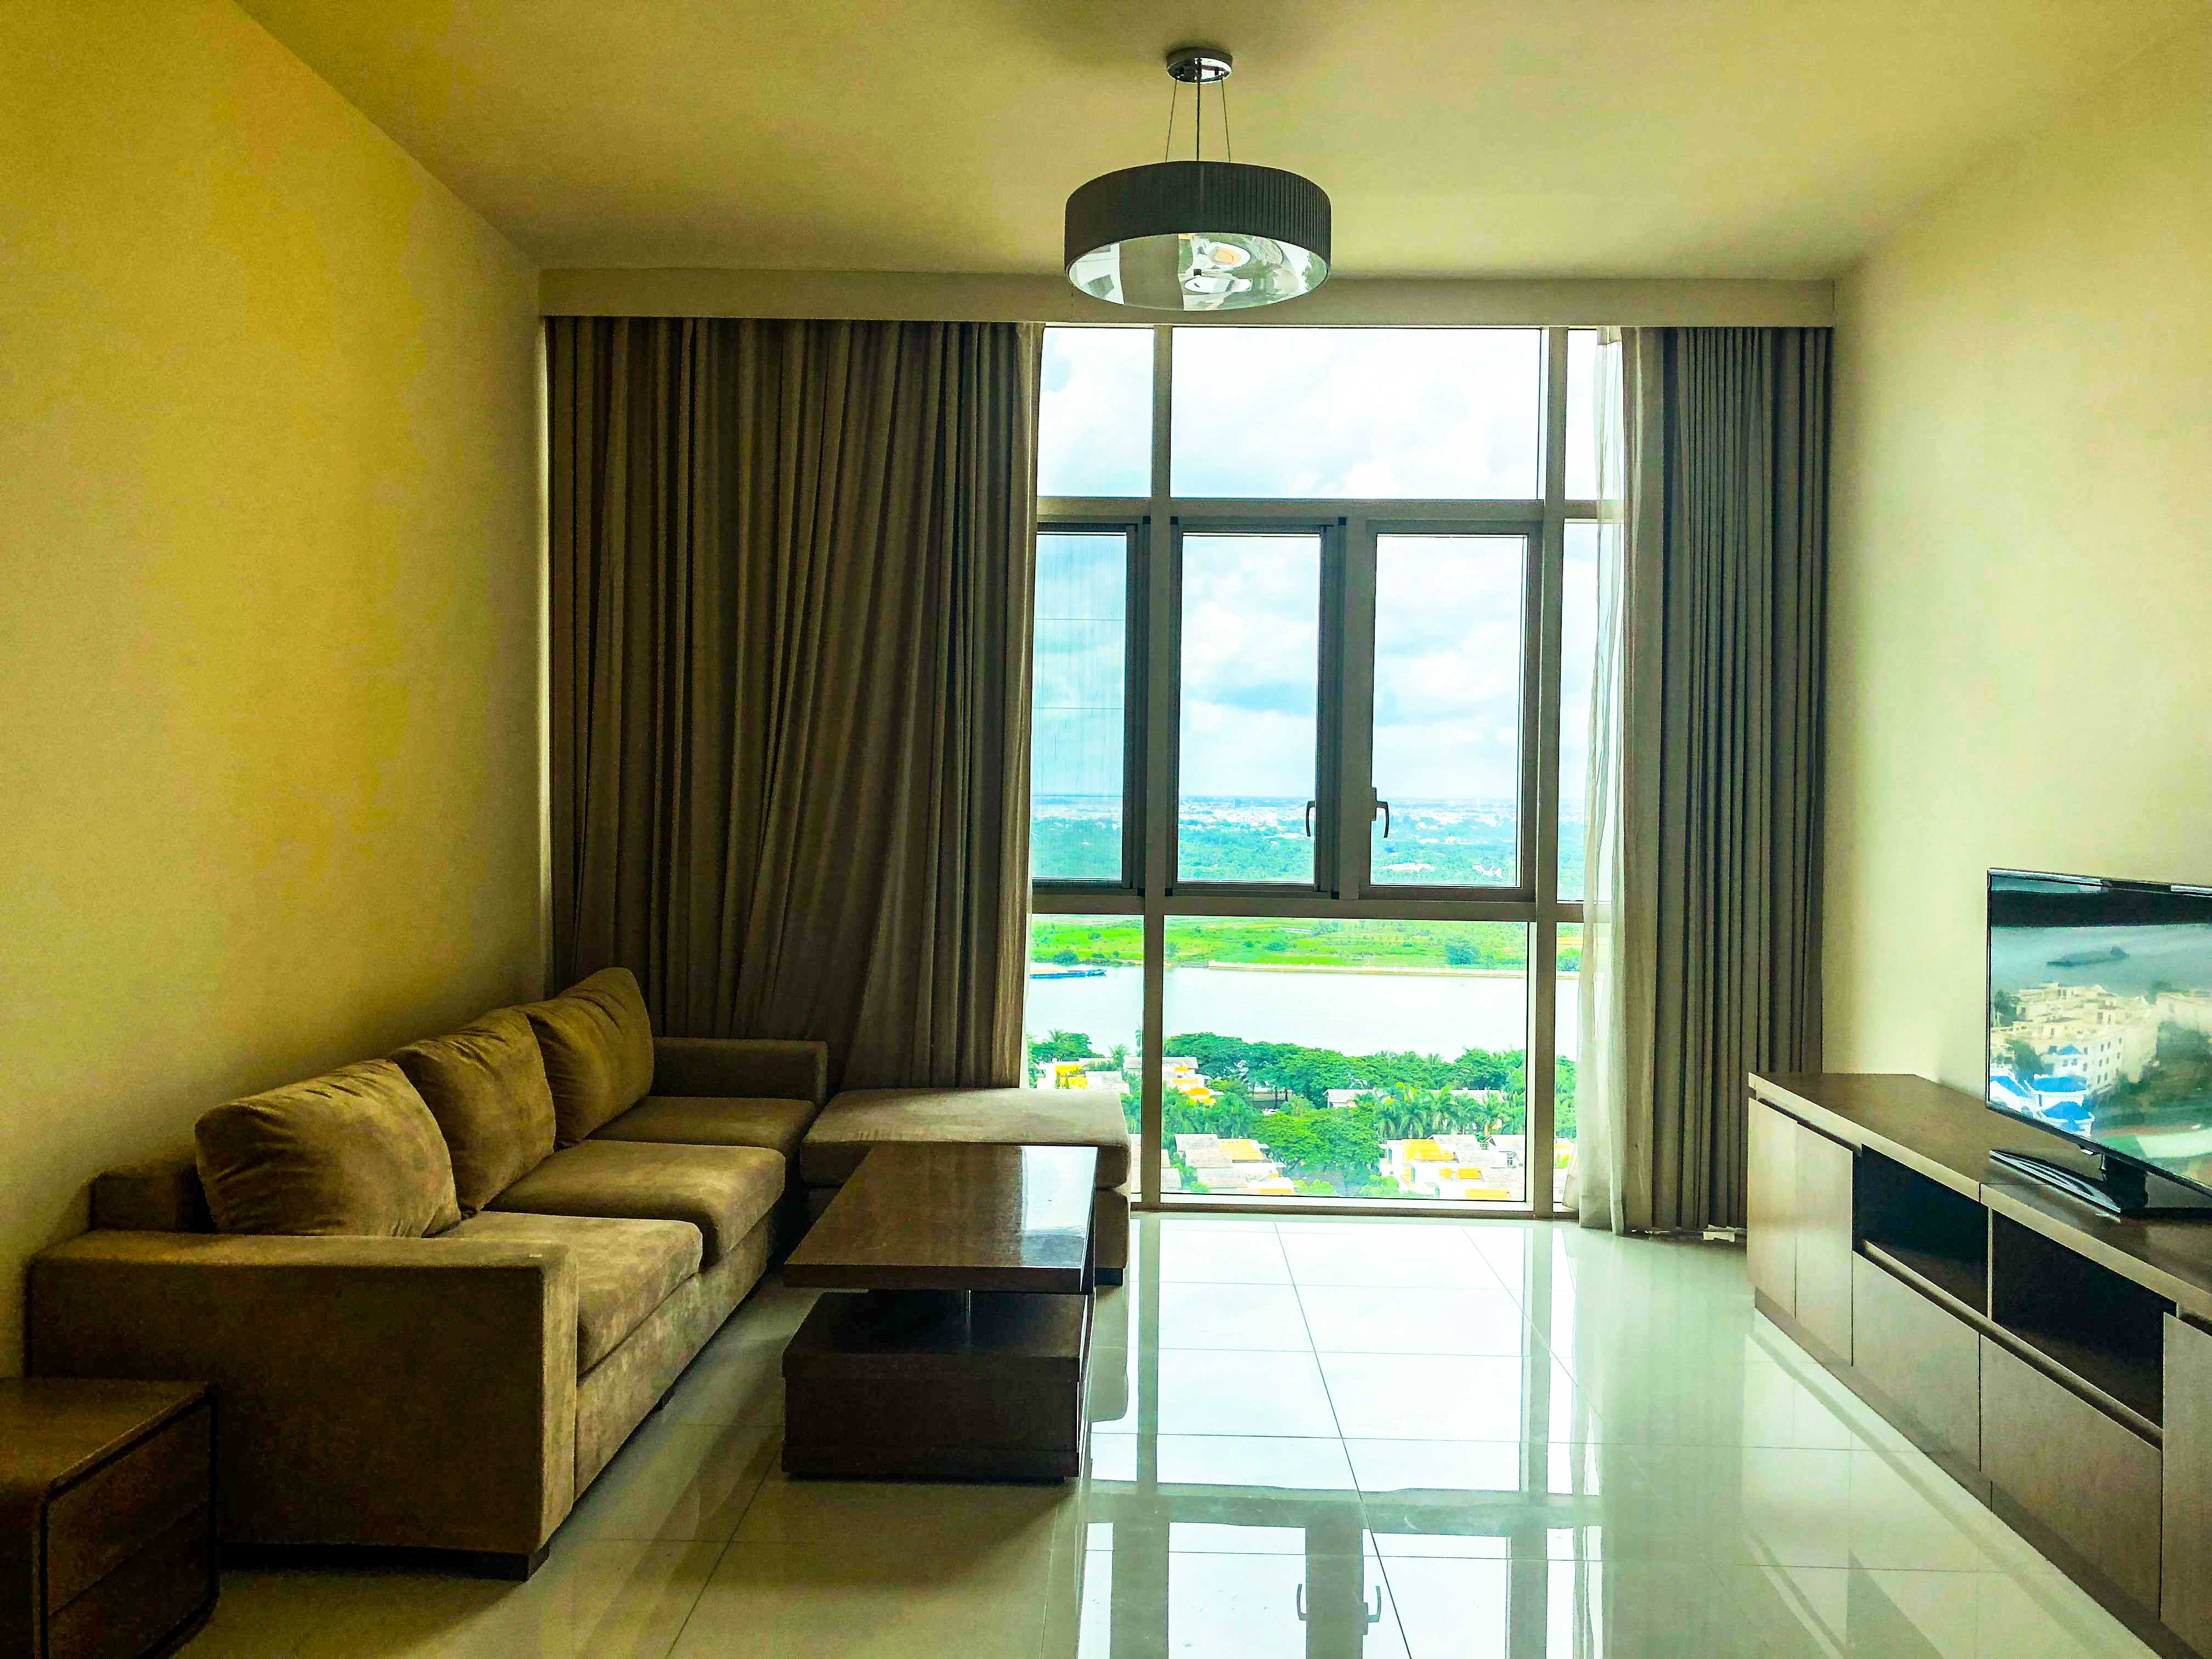 The Vista apartment for rent in An Phu Ward, District 2, Ho Chi Minh City - 3 bedrooms